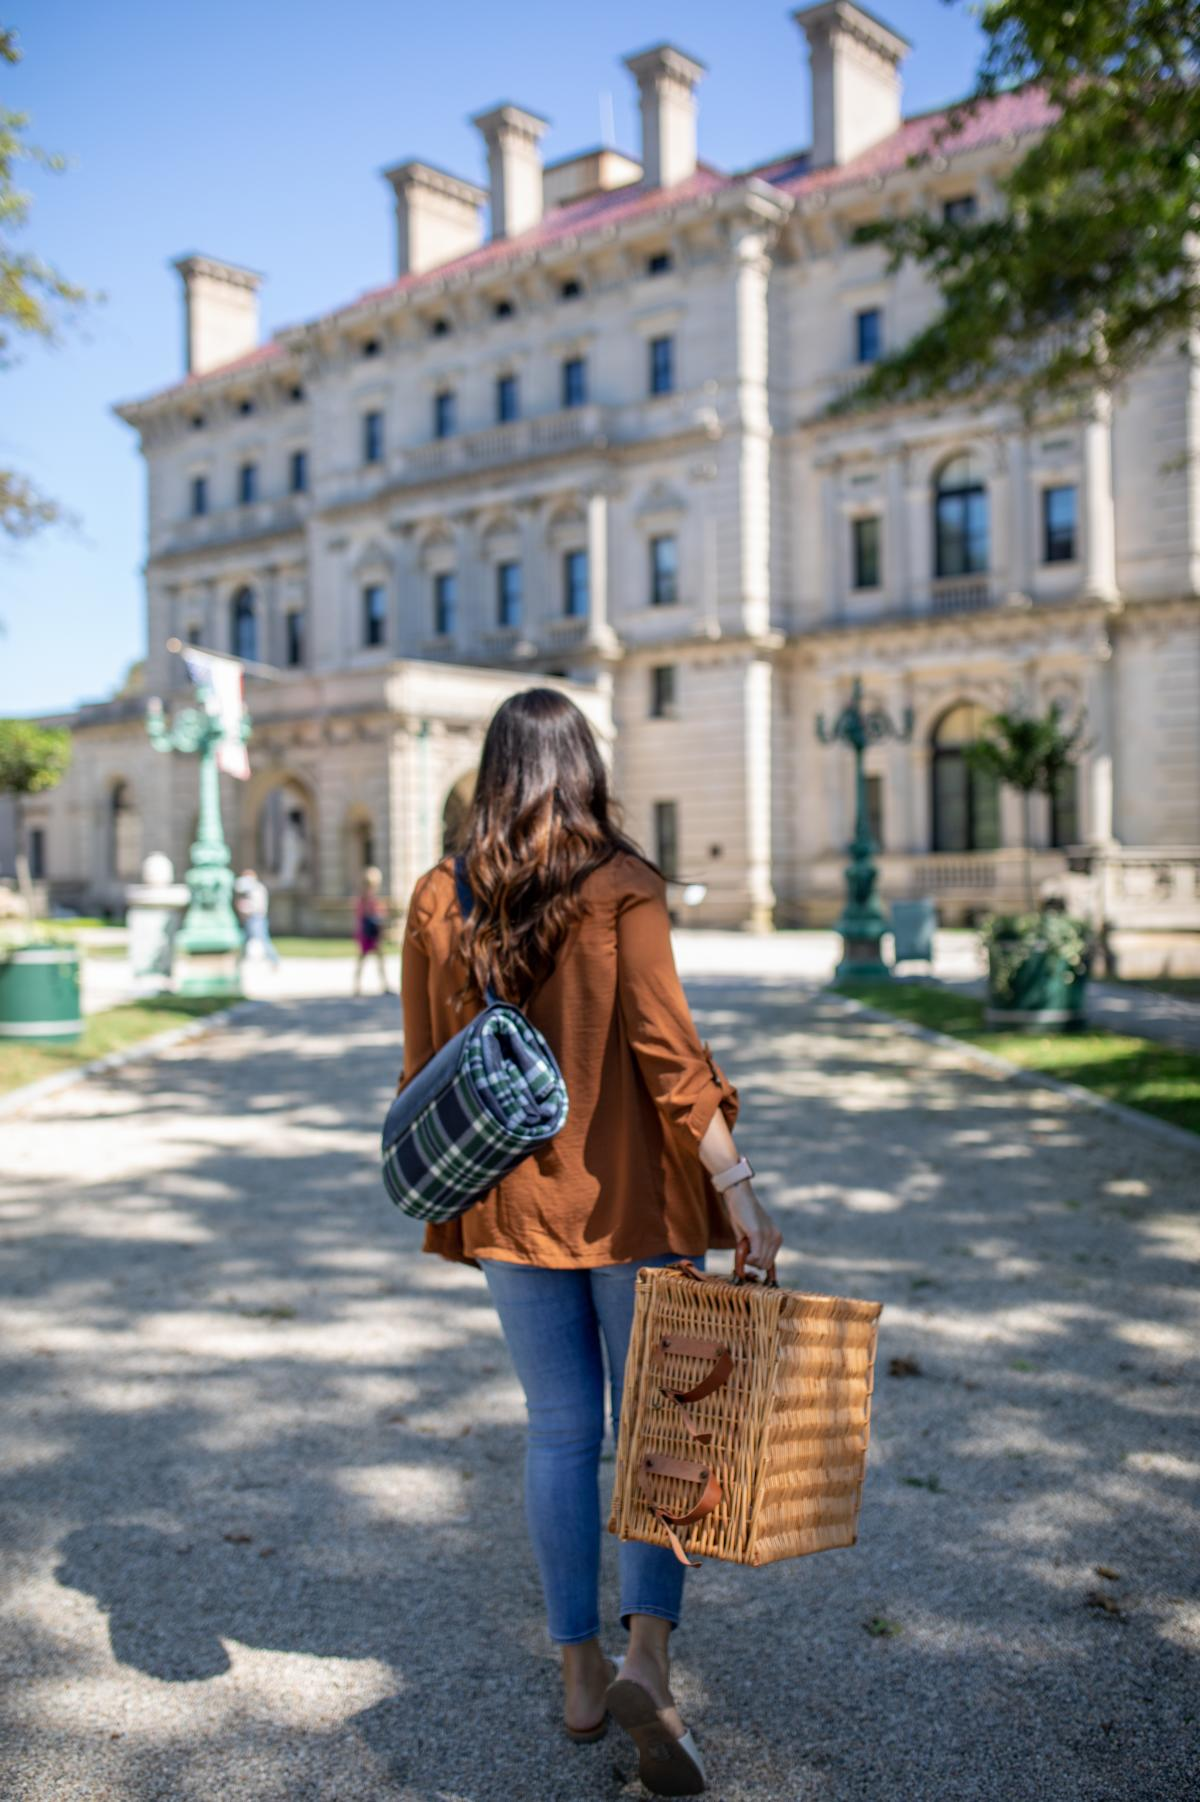 Woman With Bag Walking To Newport Mansion